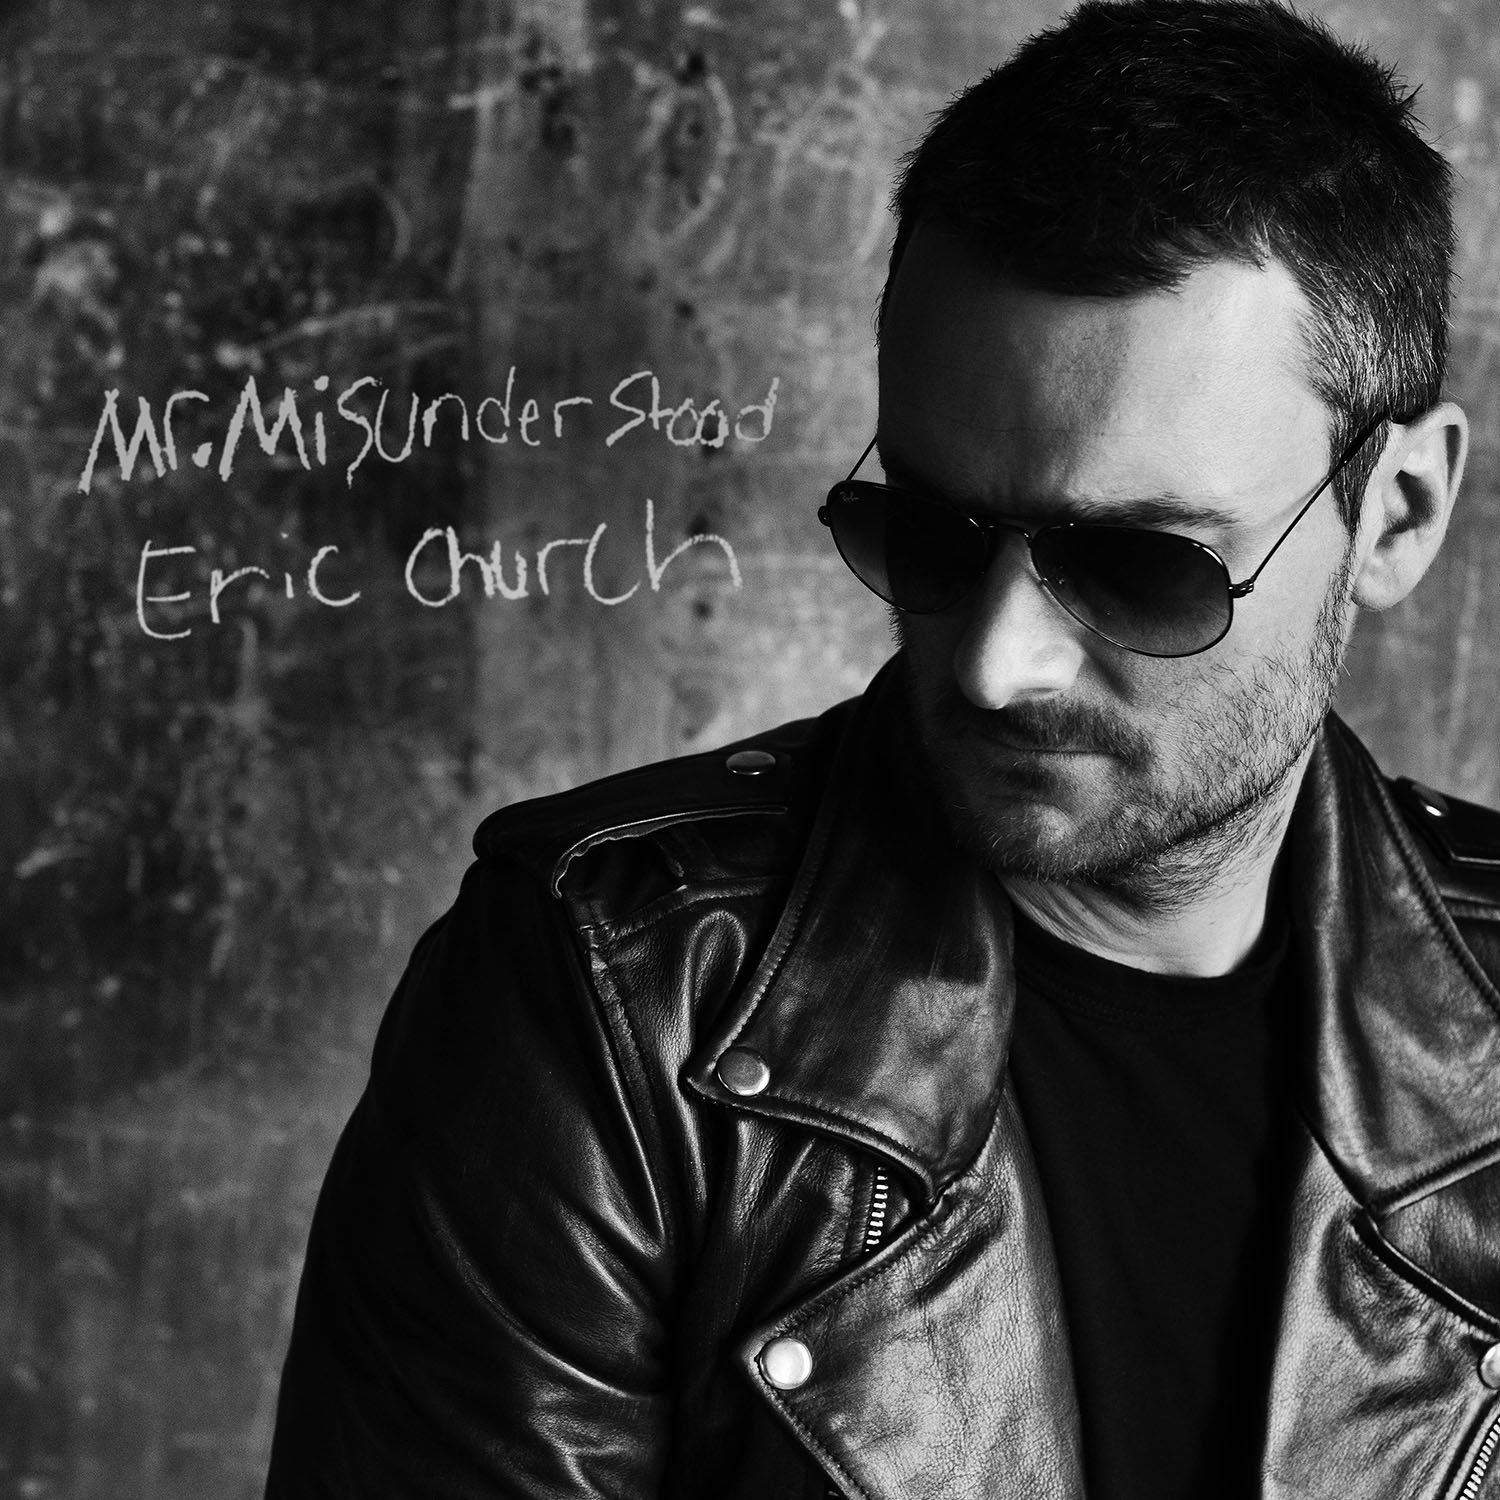 eric church 39 s new 39 mr misunderstood 39 album is a welcome surprise country music bistro. Black Bedroom Furniture Sets. Home Design Ideas